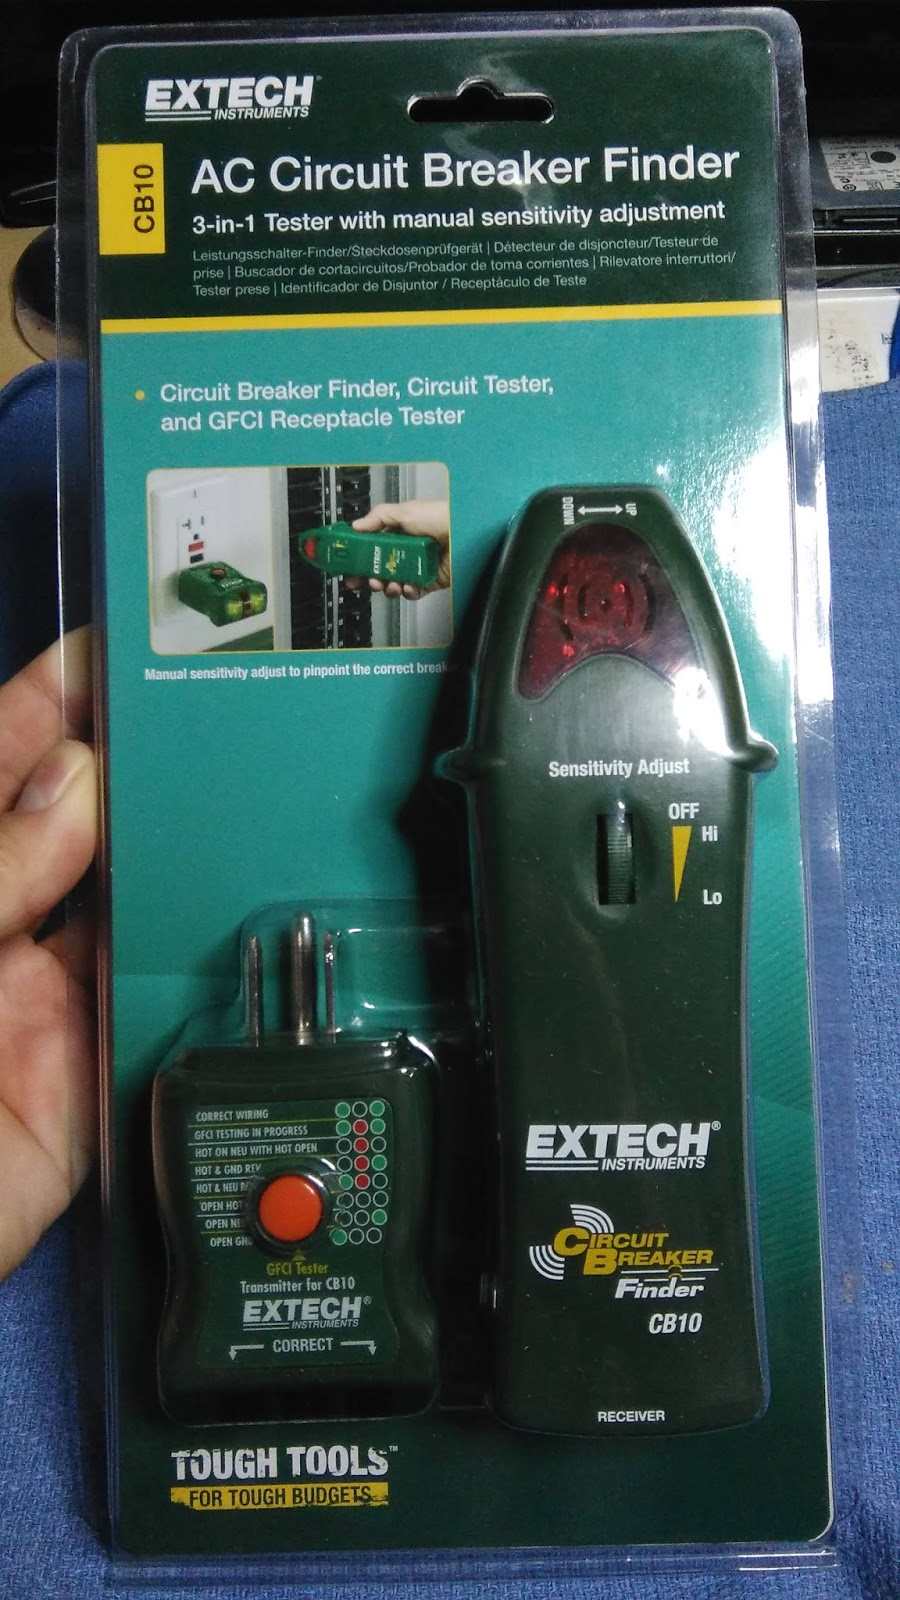 Tech Stuff Extech Cb10 Circuit Breaker Finder How To Test A Gfci Heres The Package Arrives Unfortunately It Does Not Come With Case Or Bag Keep Safe Like My Toner Did Would Be Nice If Have One